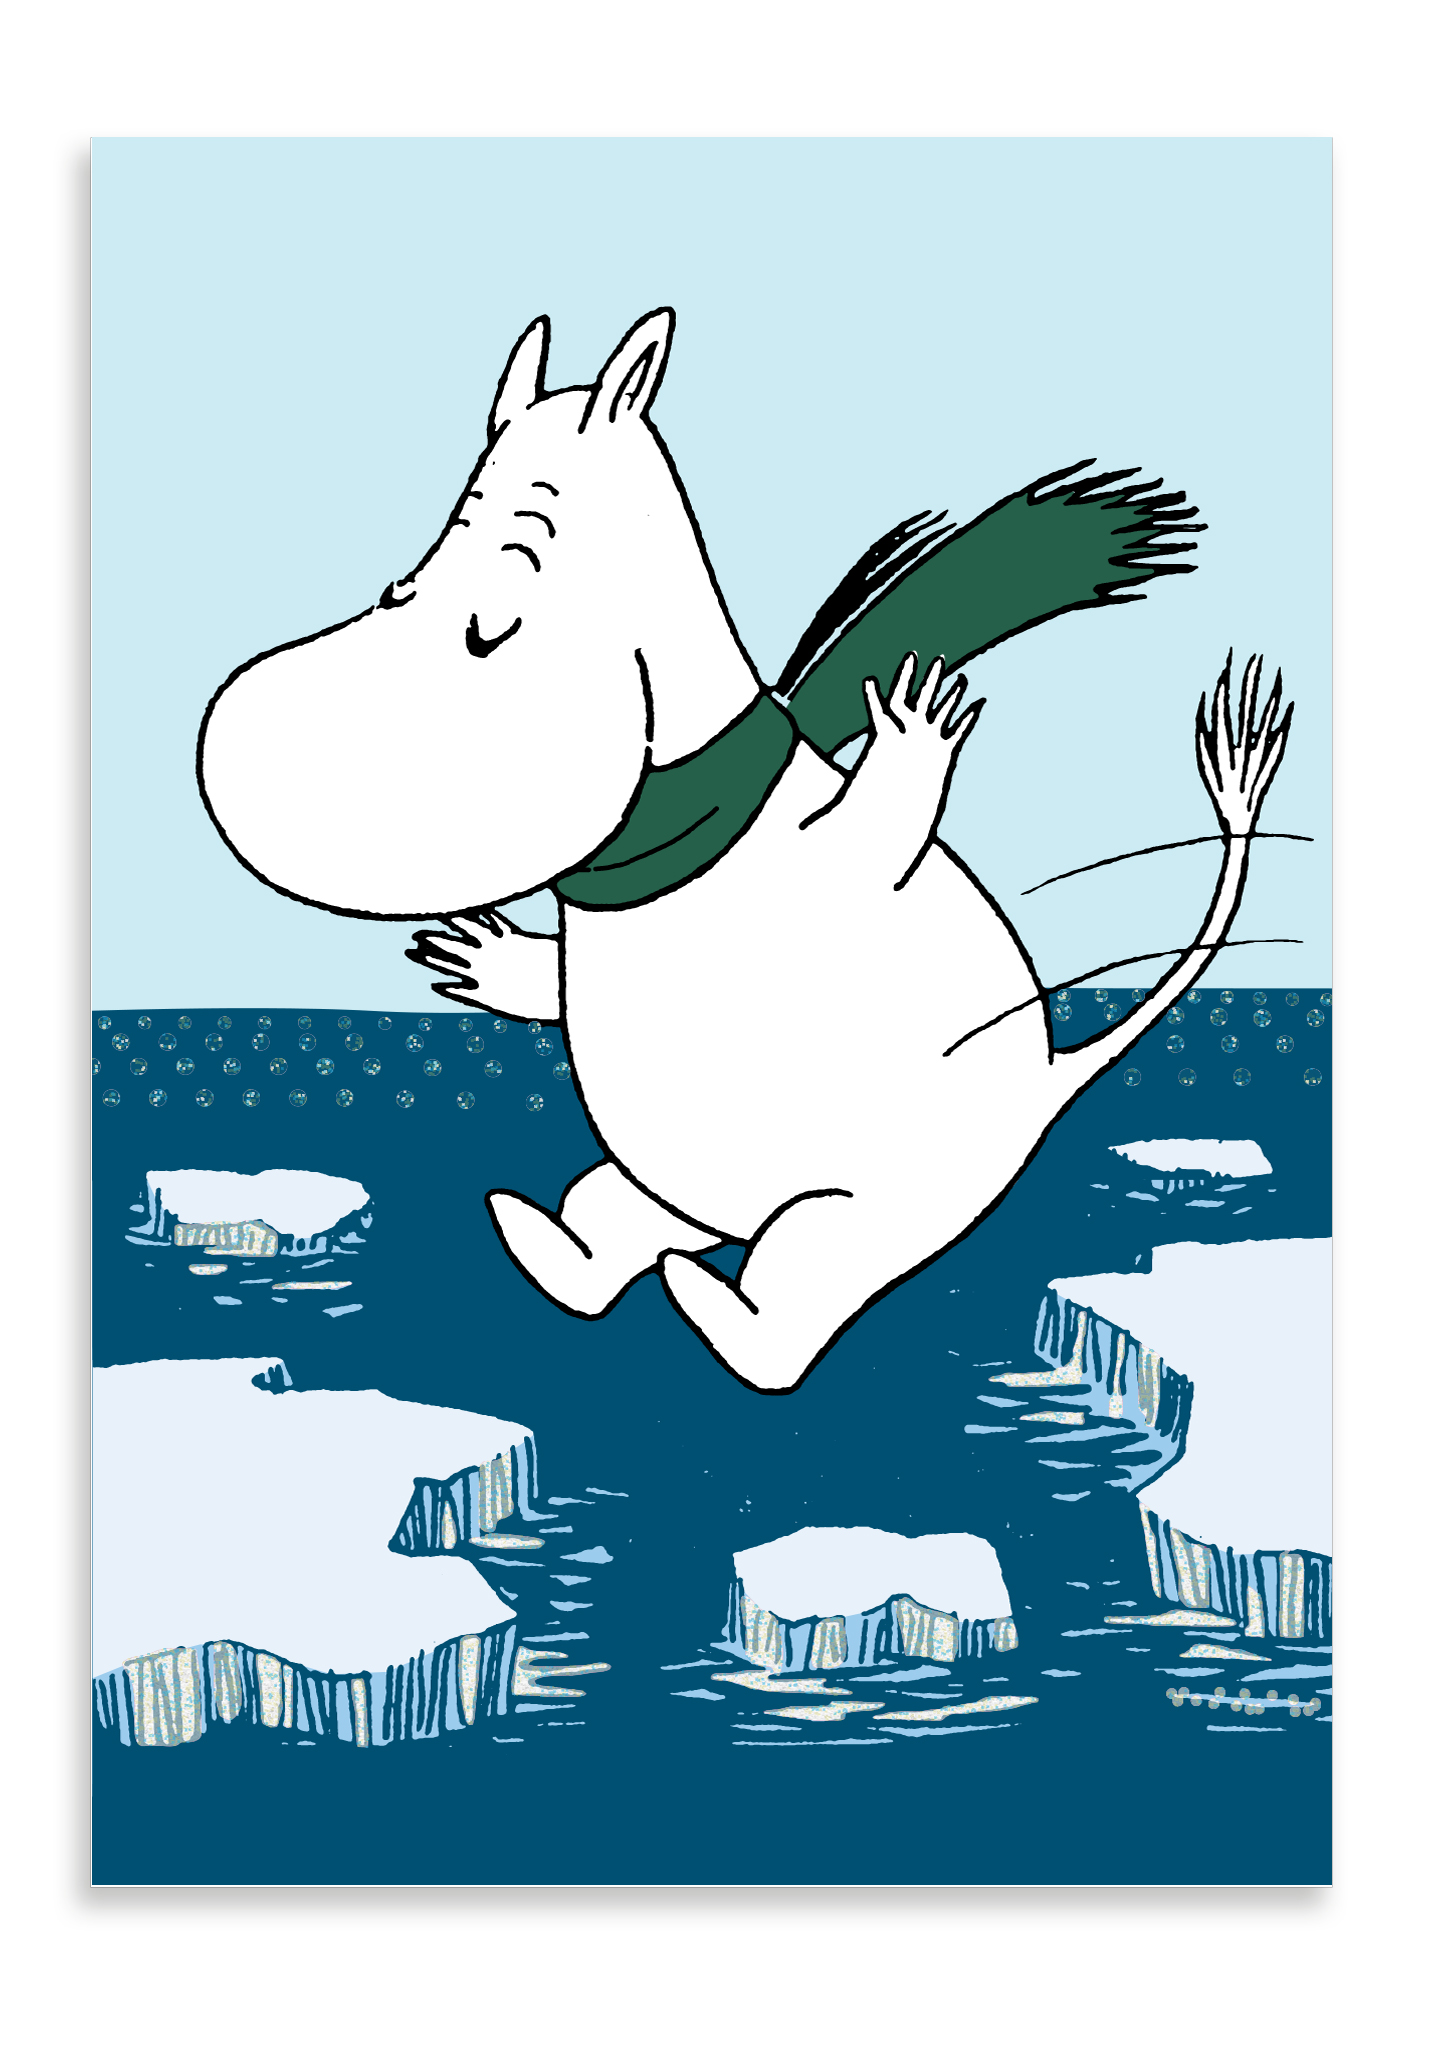 Putinki Winter postcard Moomintroll jumping on ice